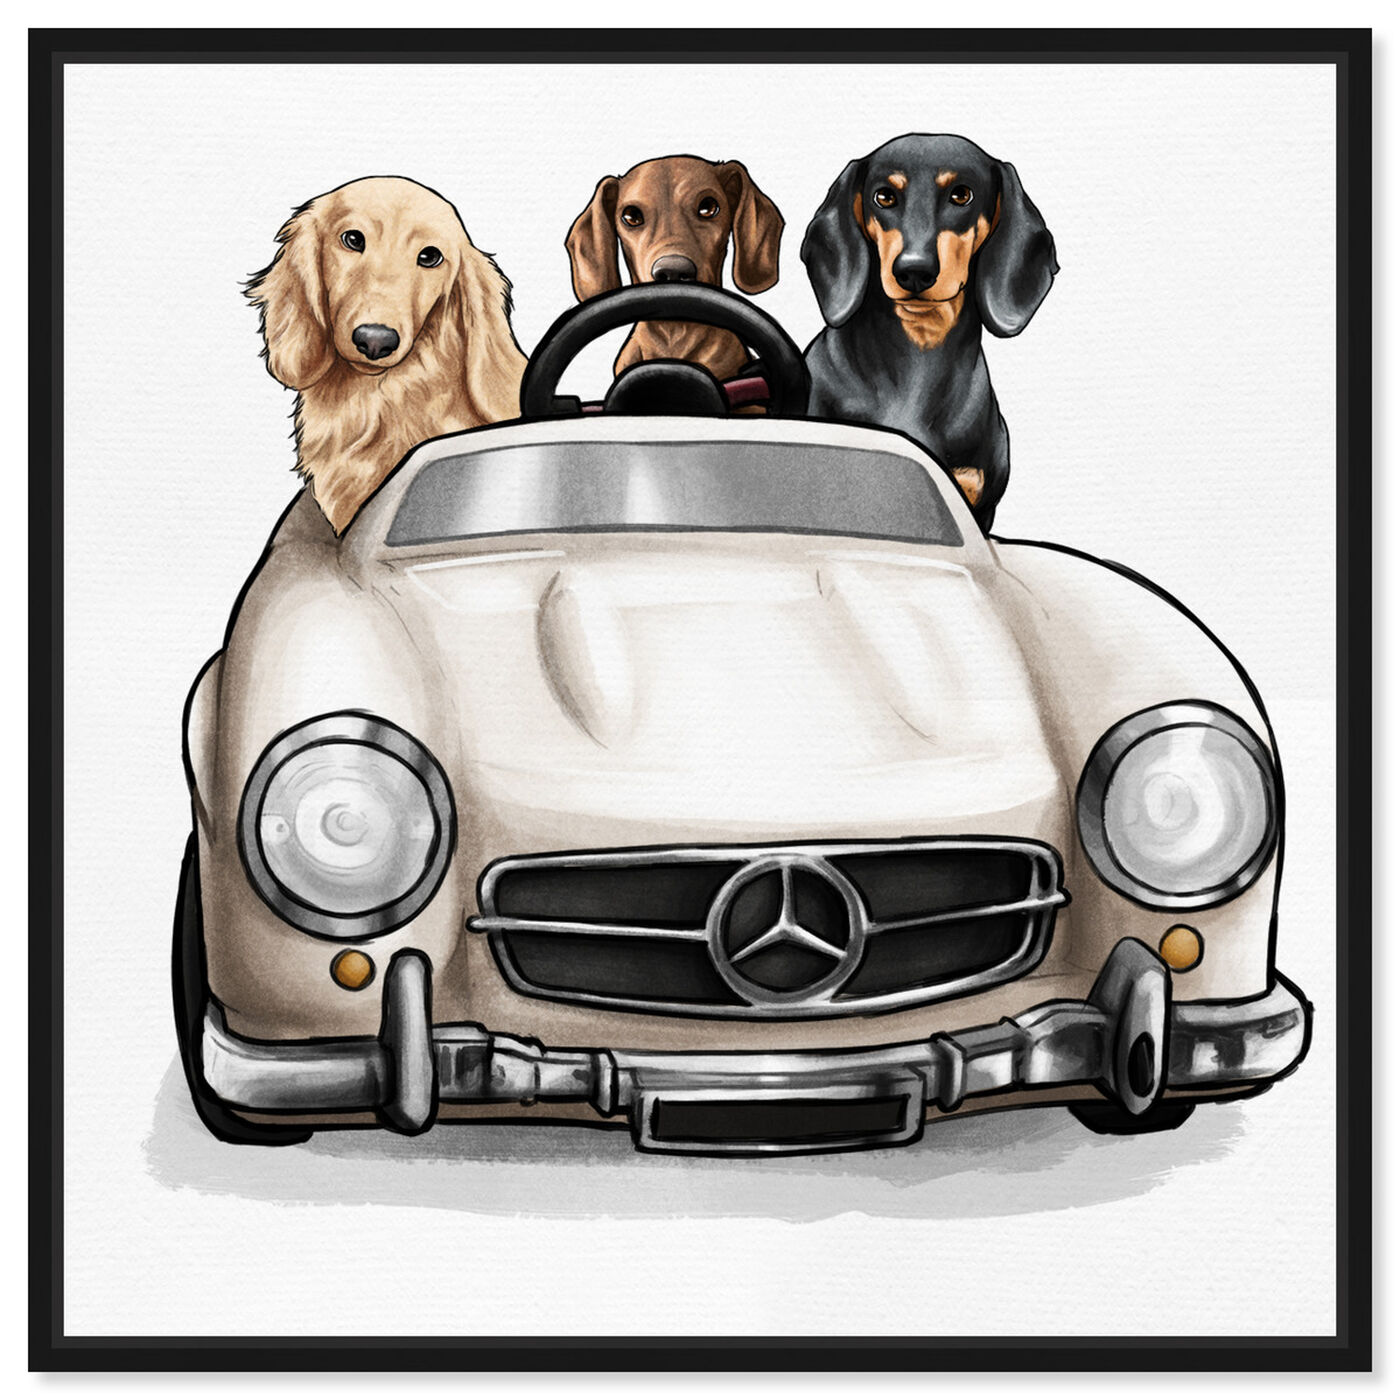 Front view of Strolling in Style dachshunds featuring animals and dogs and puppies art.